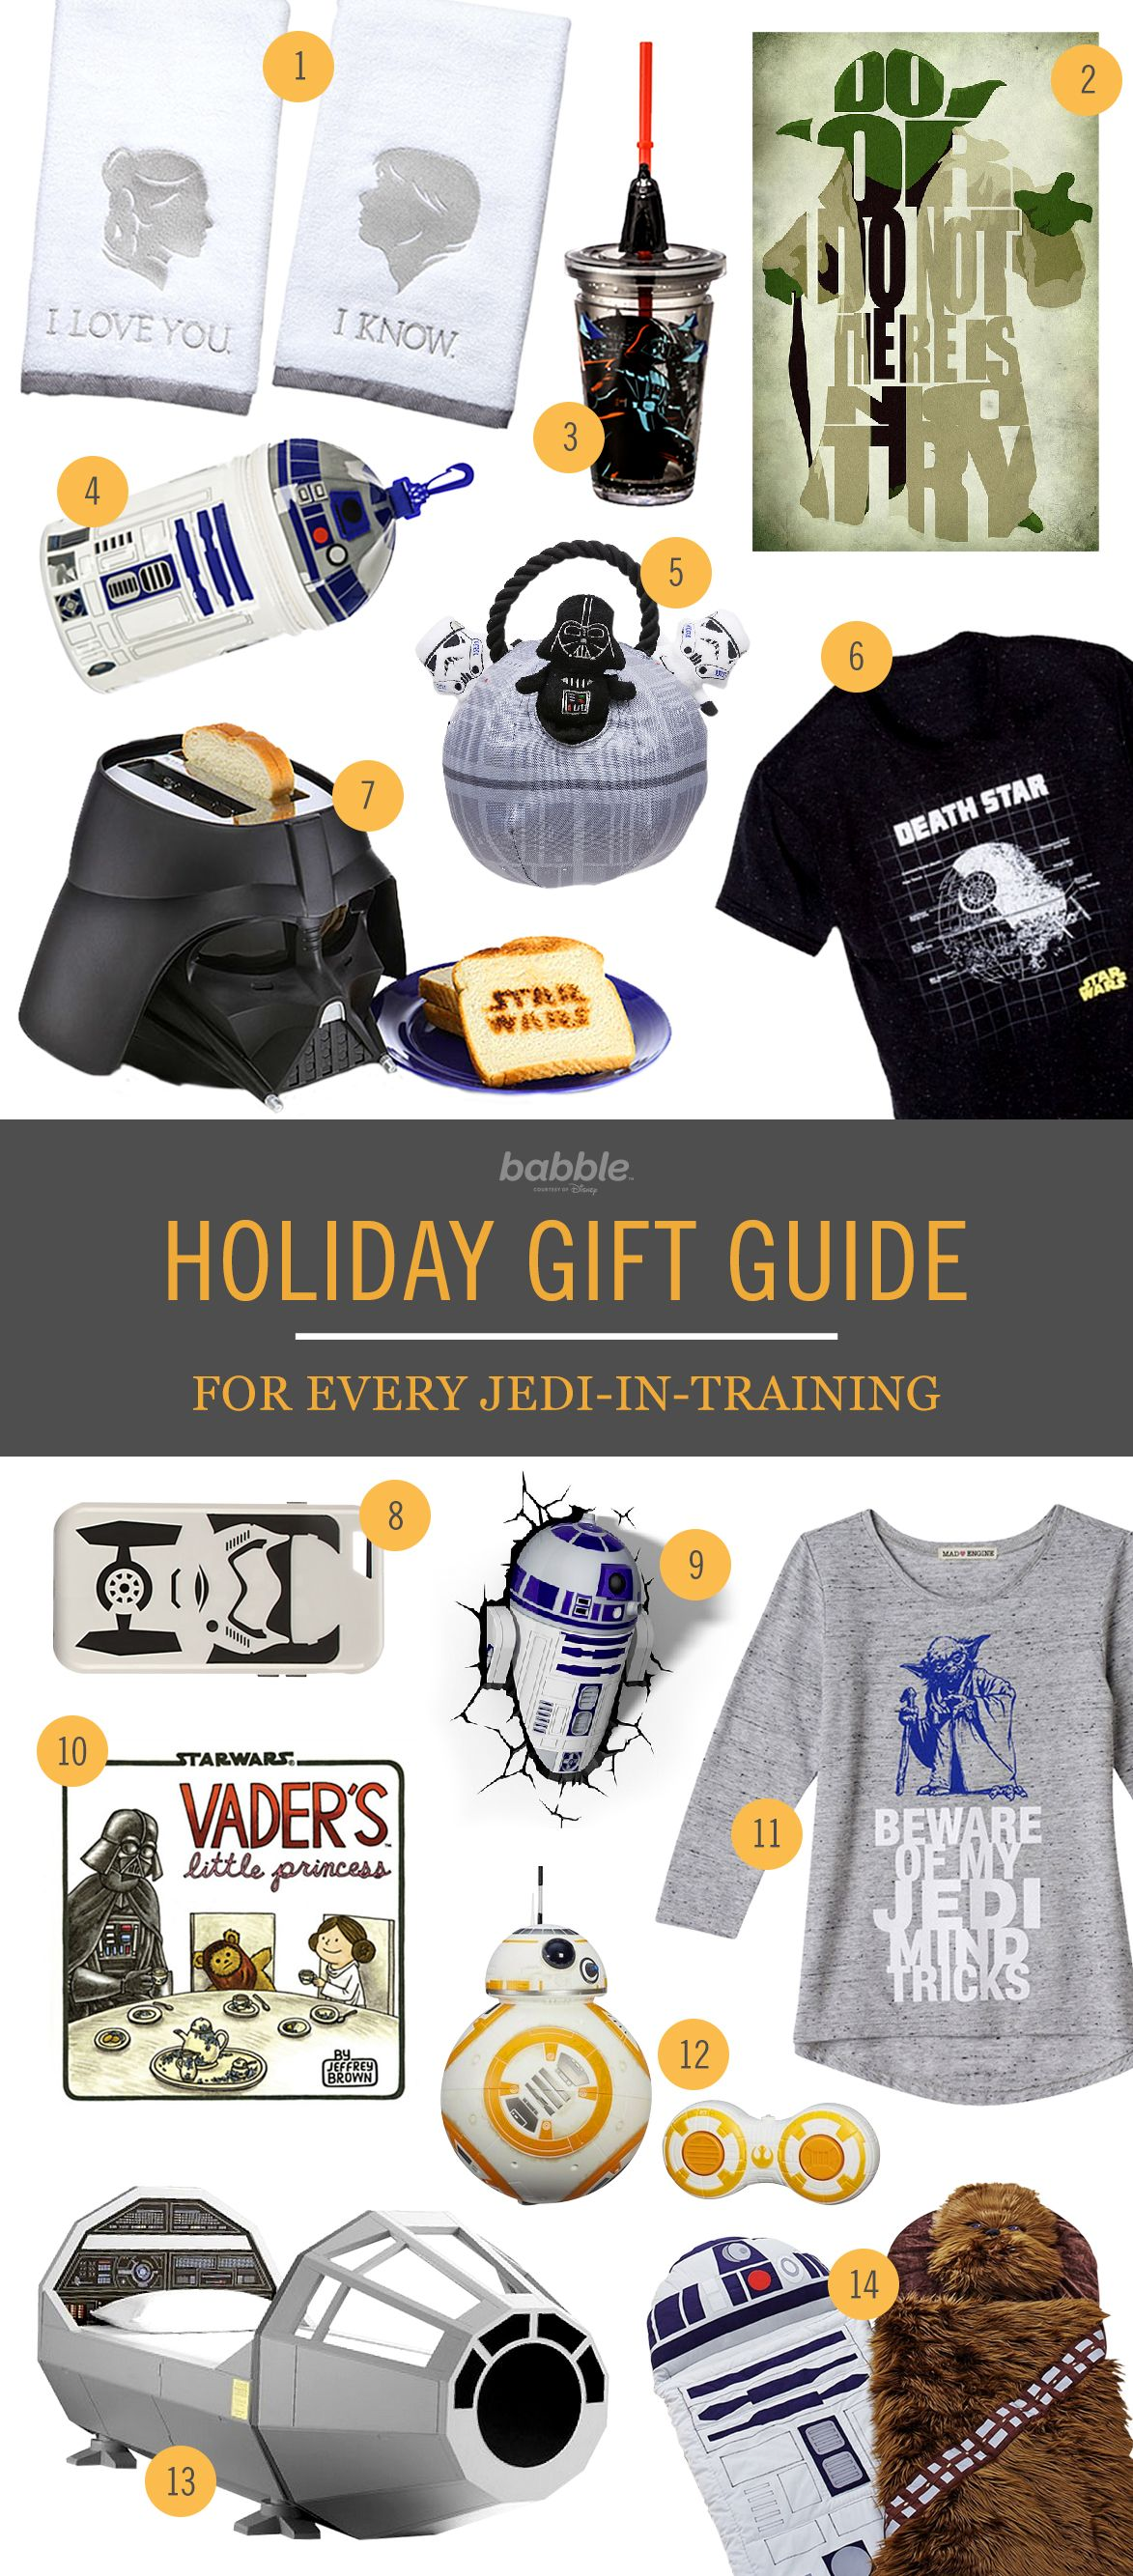 Star Themed Gifts 9 39star Wars 39 Gifts For Every Jedi In Training Star Wars